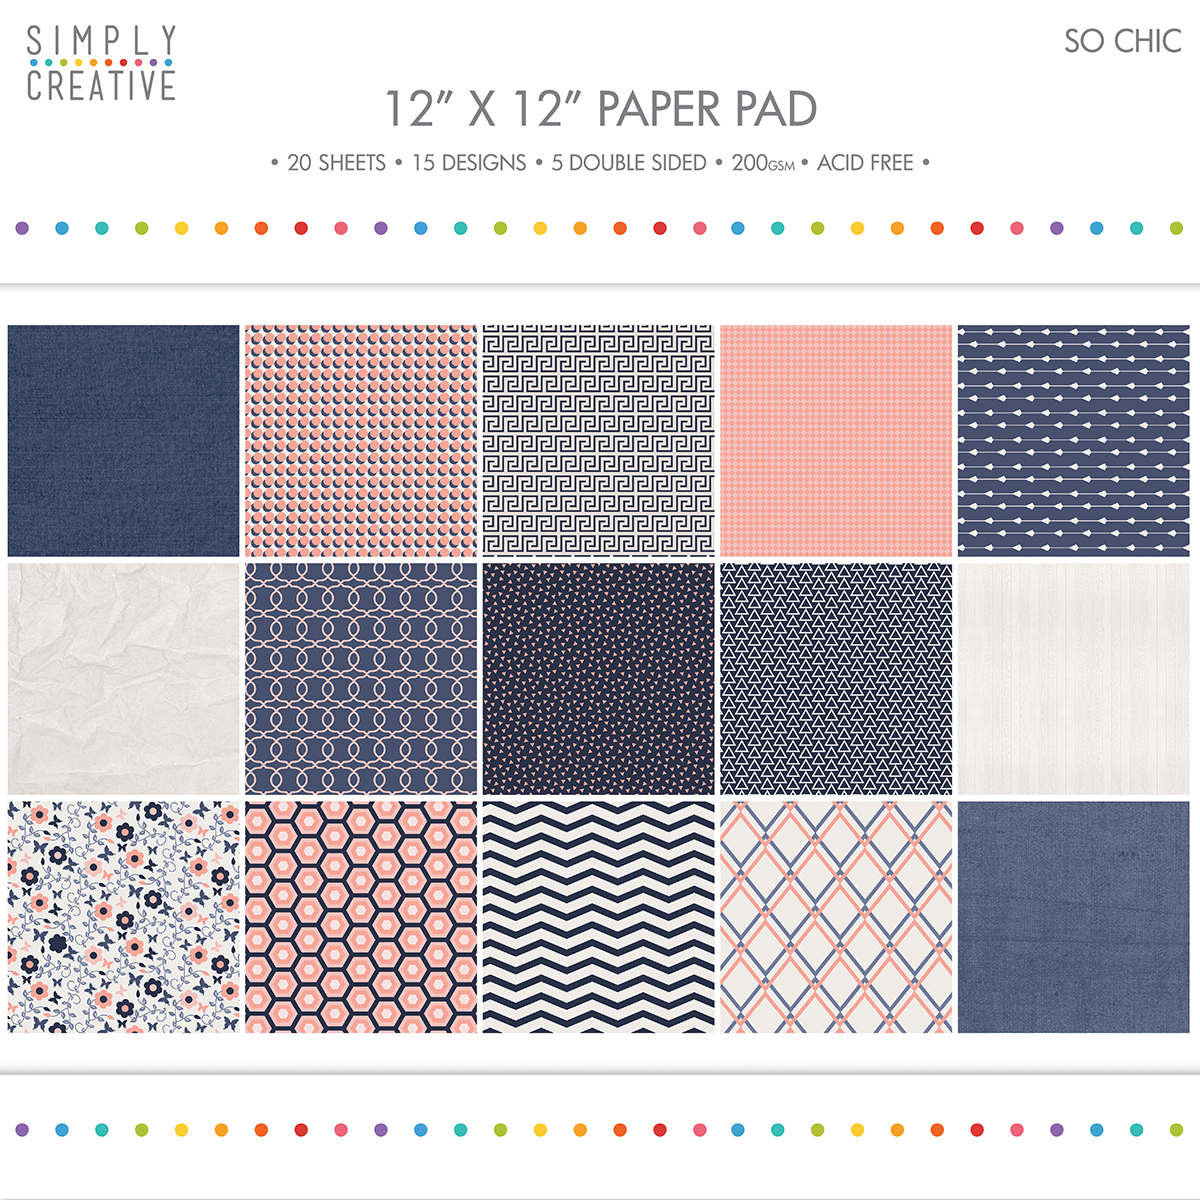 """Simply Creative Paper Pad 12""""X12"""" 20/Pkg-So Chic, 15 Designs/5 Double-Sided"""